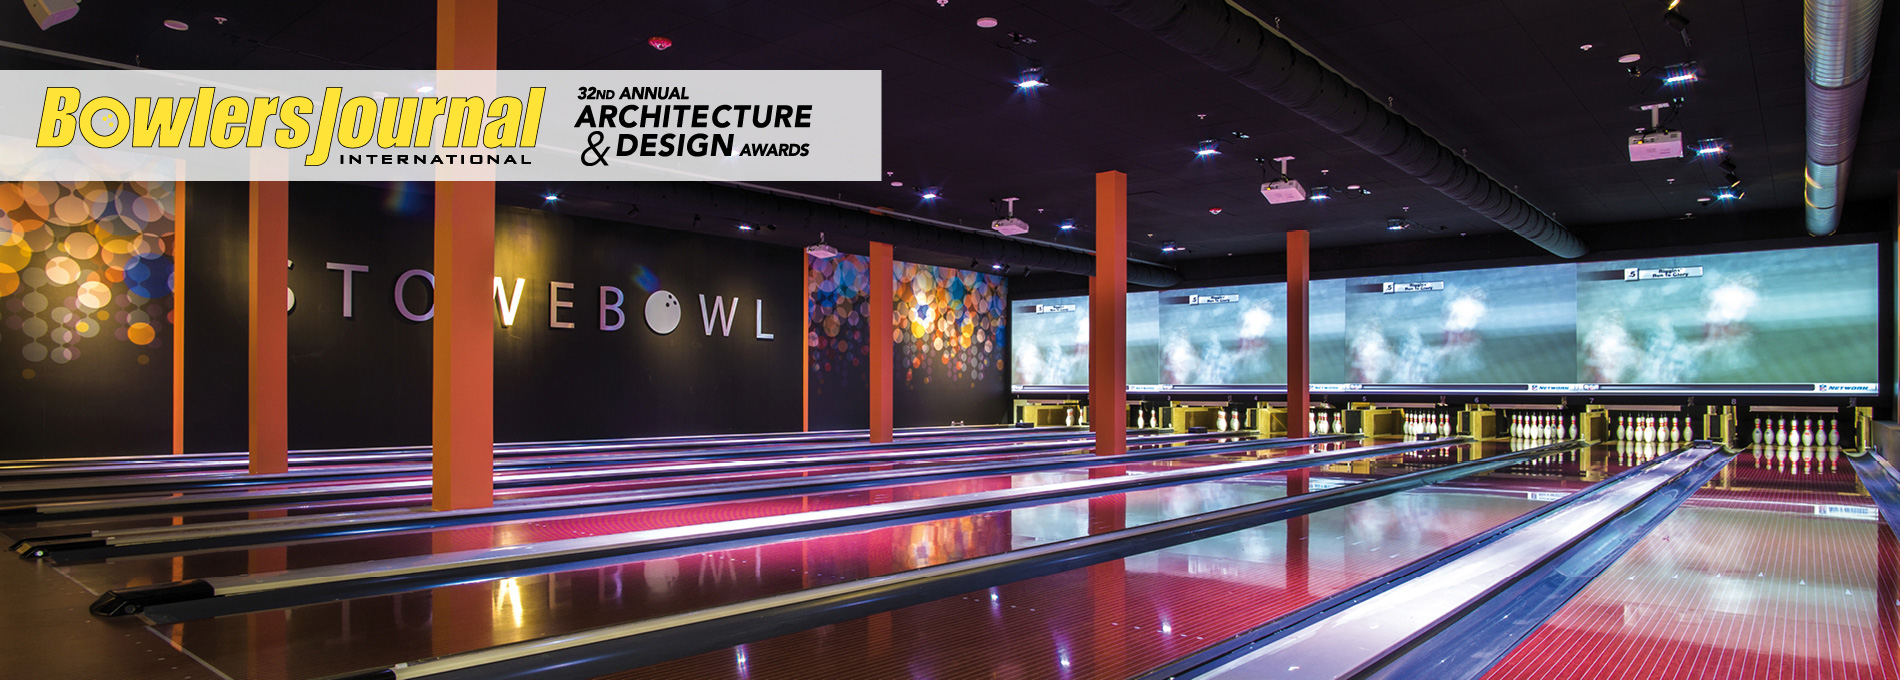 qubicaamf-bowling-32nd-architecture-and-design-awords-banner-STOWE-BOWL.jpg